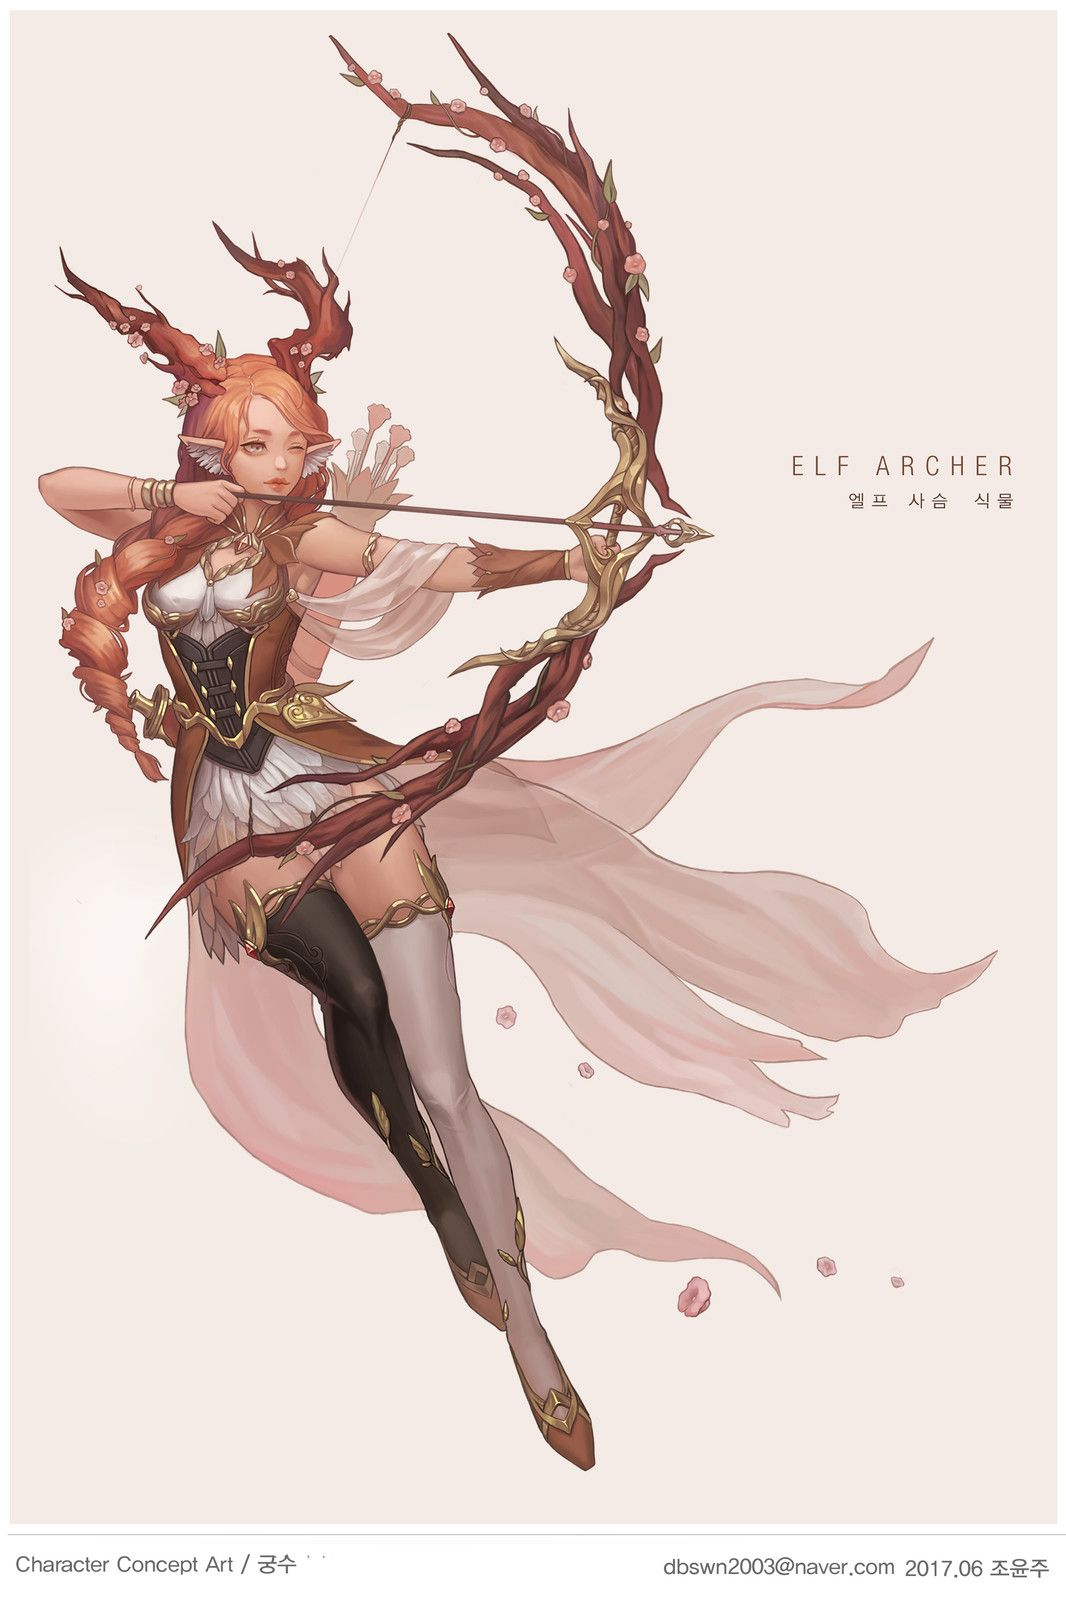 Elf Archer, Yoonju Cho on ArtStation at www